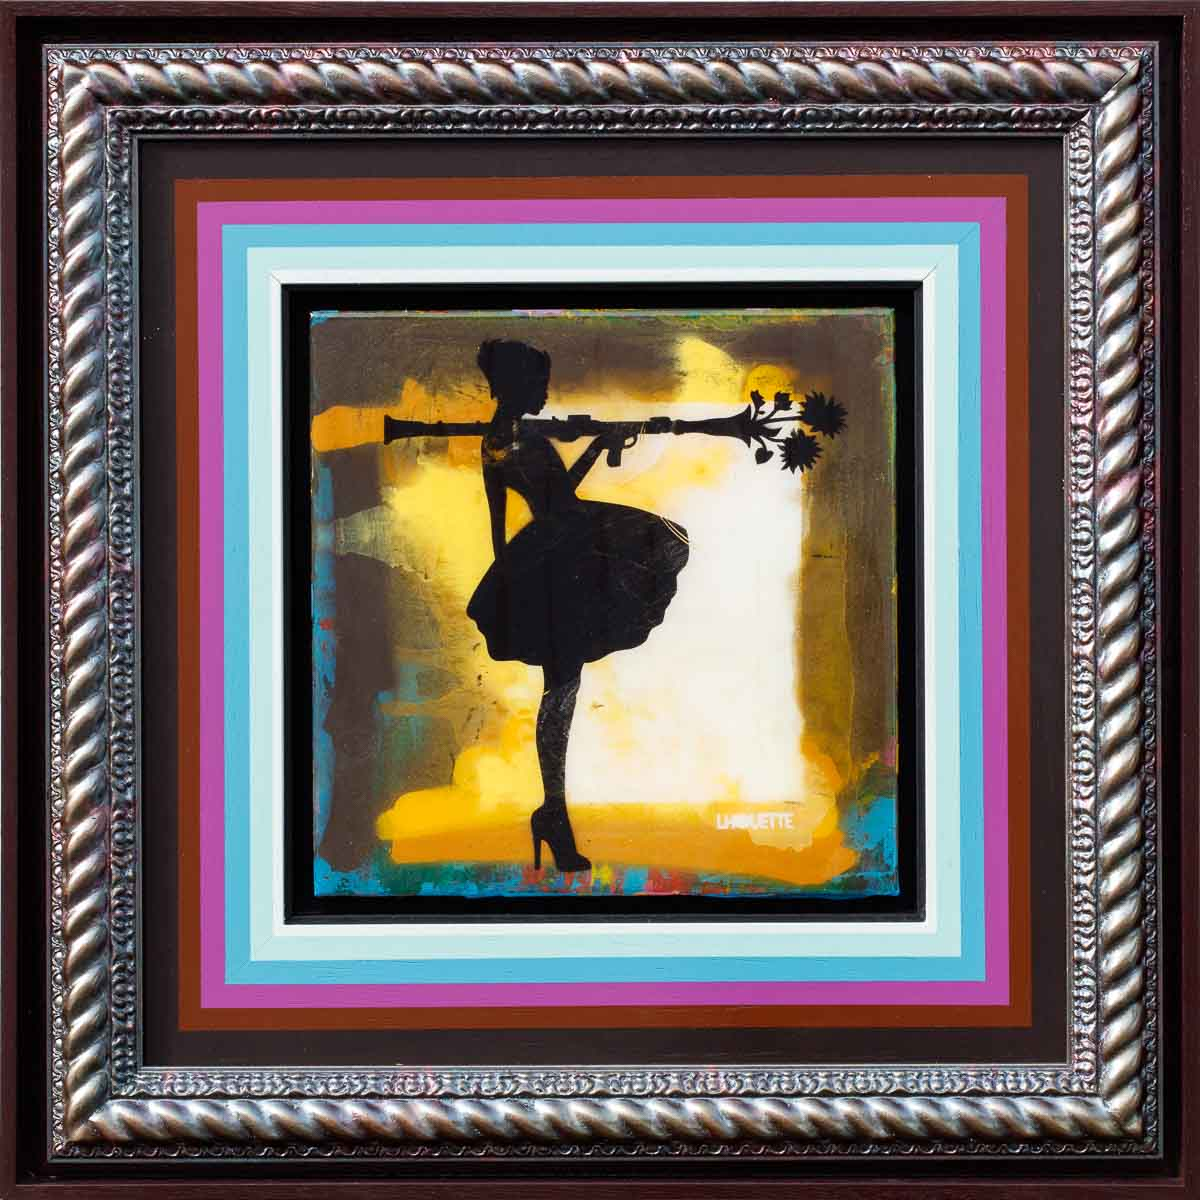 Bazooka Jo Floral Mixer (Golden Yellow) - Original Lhouette Framed